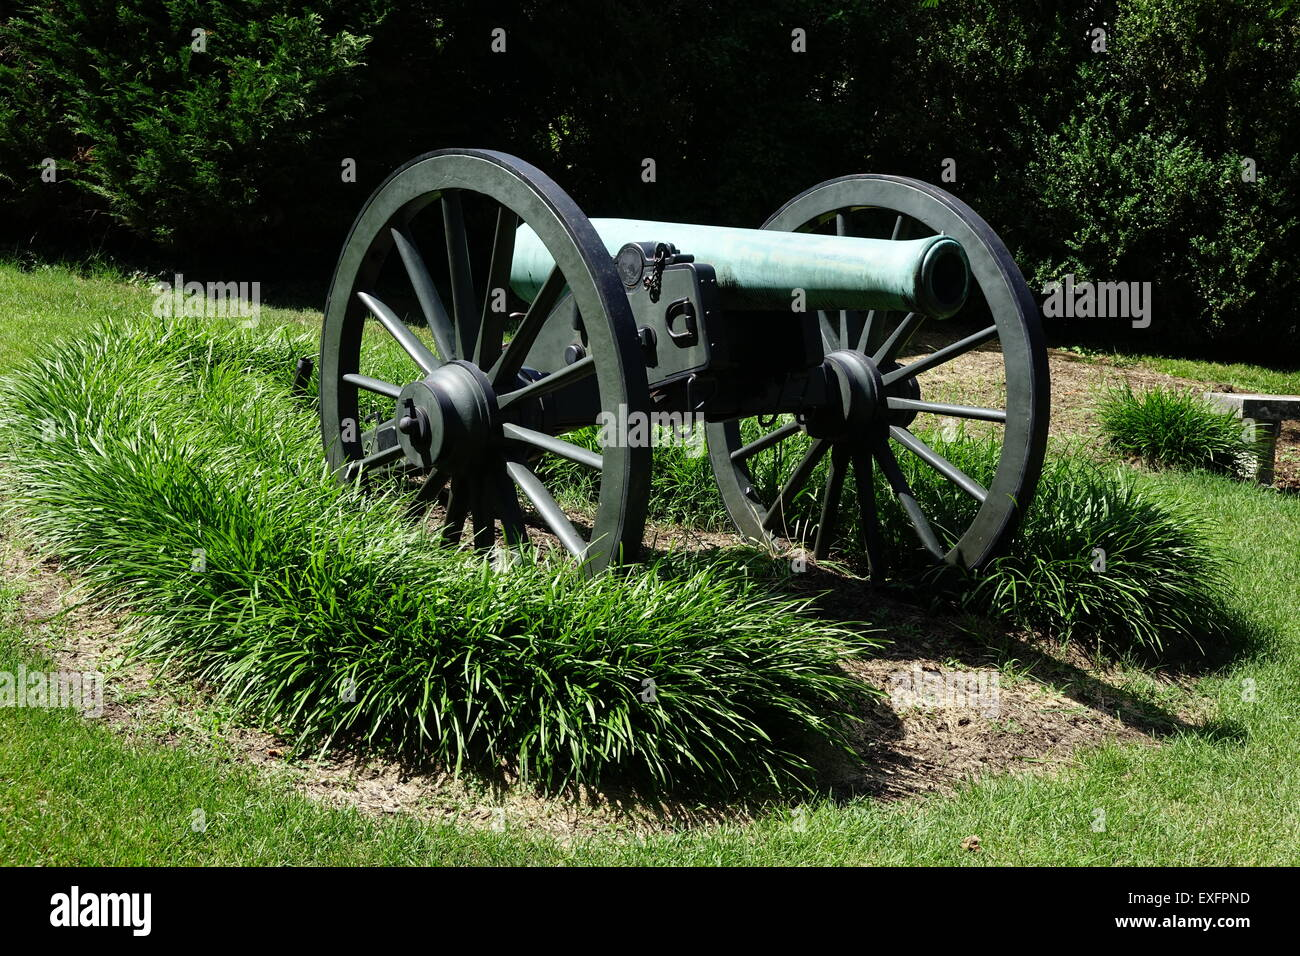 Civil war era cannon displayed outside the Stonewall Jackson's Headquarters Museum in Winchester, Virginia - Stock Image